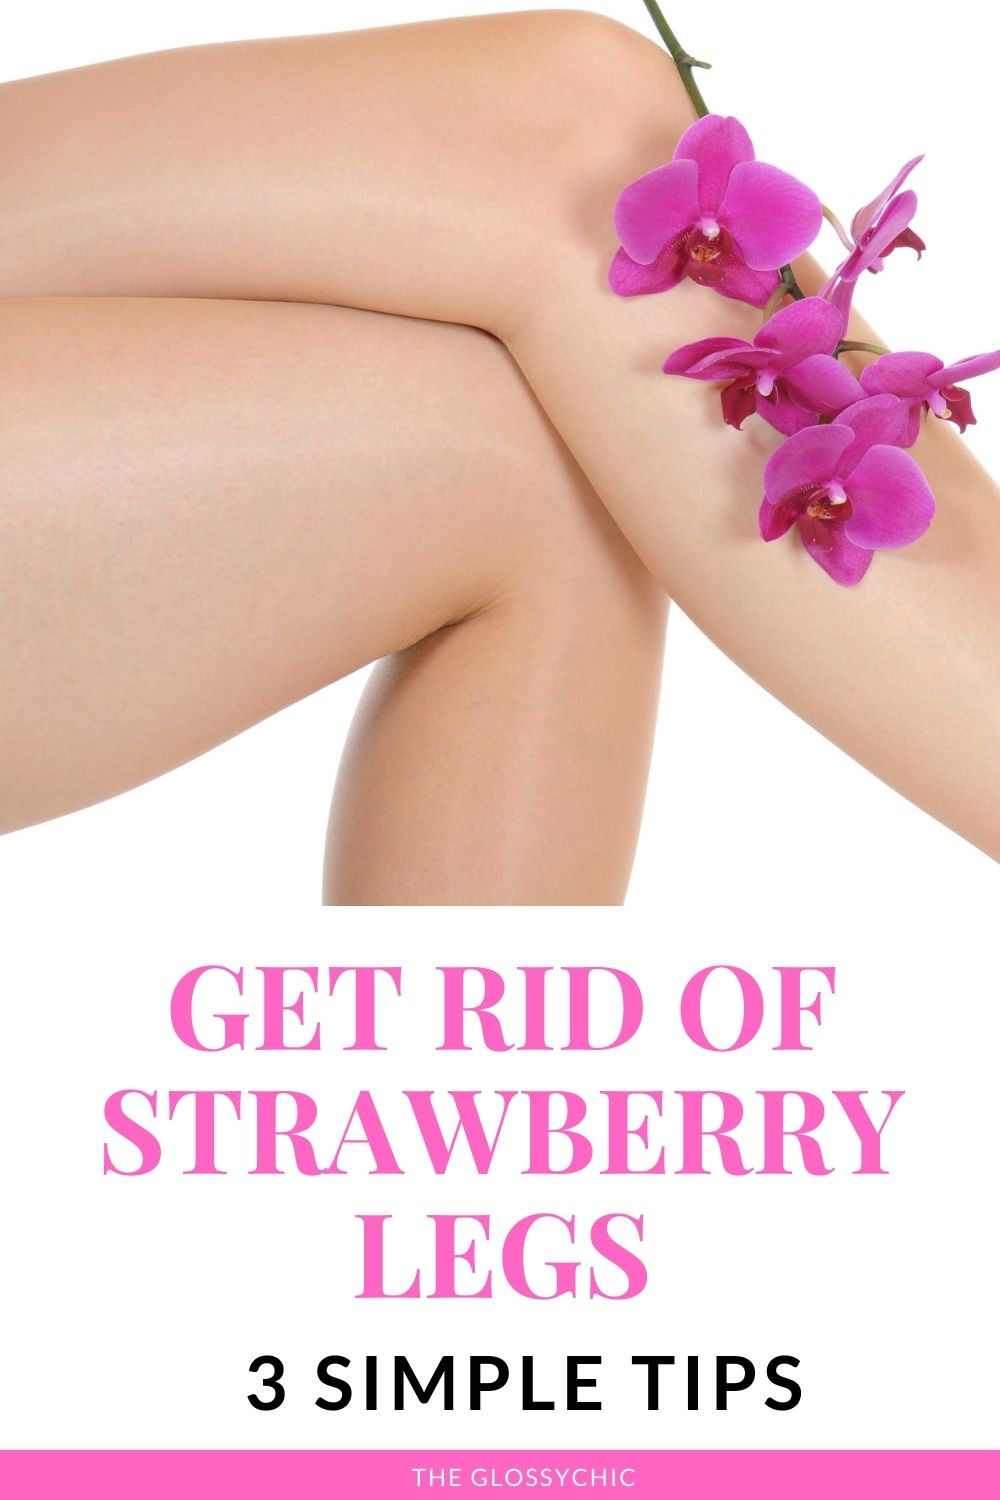 3 simple tips to get rid of strawberry legs